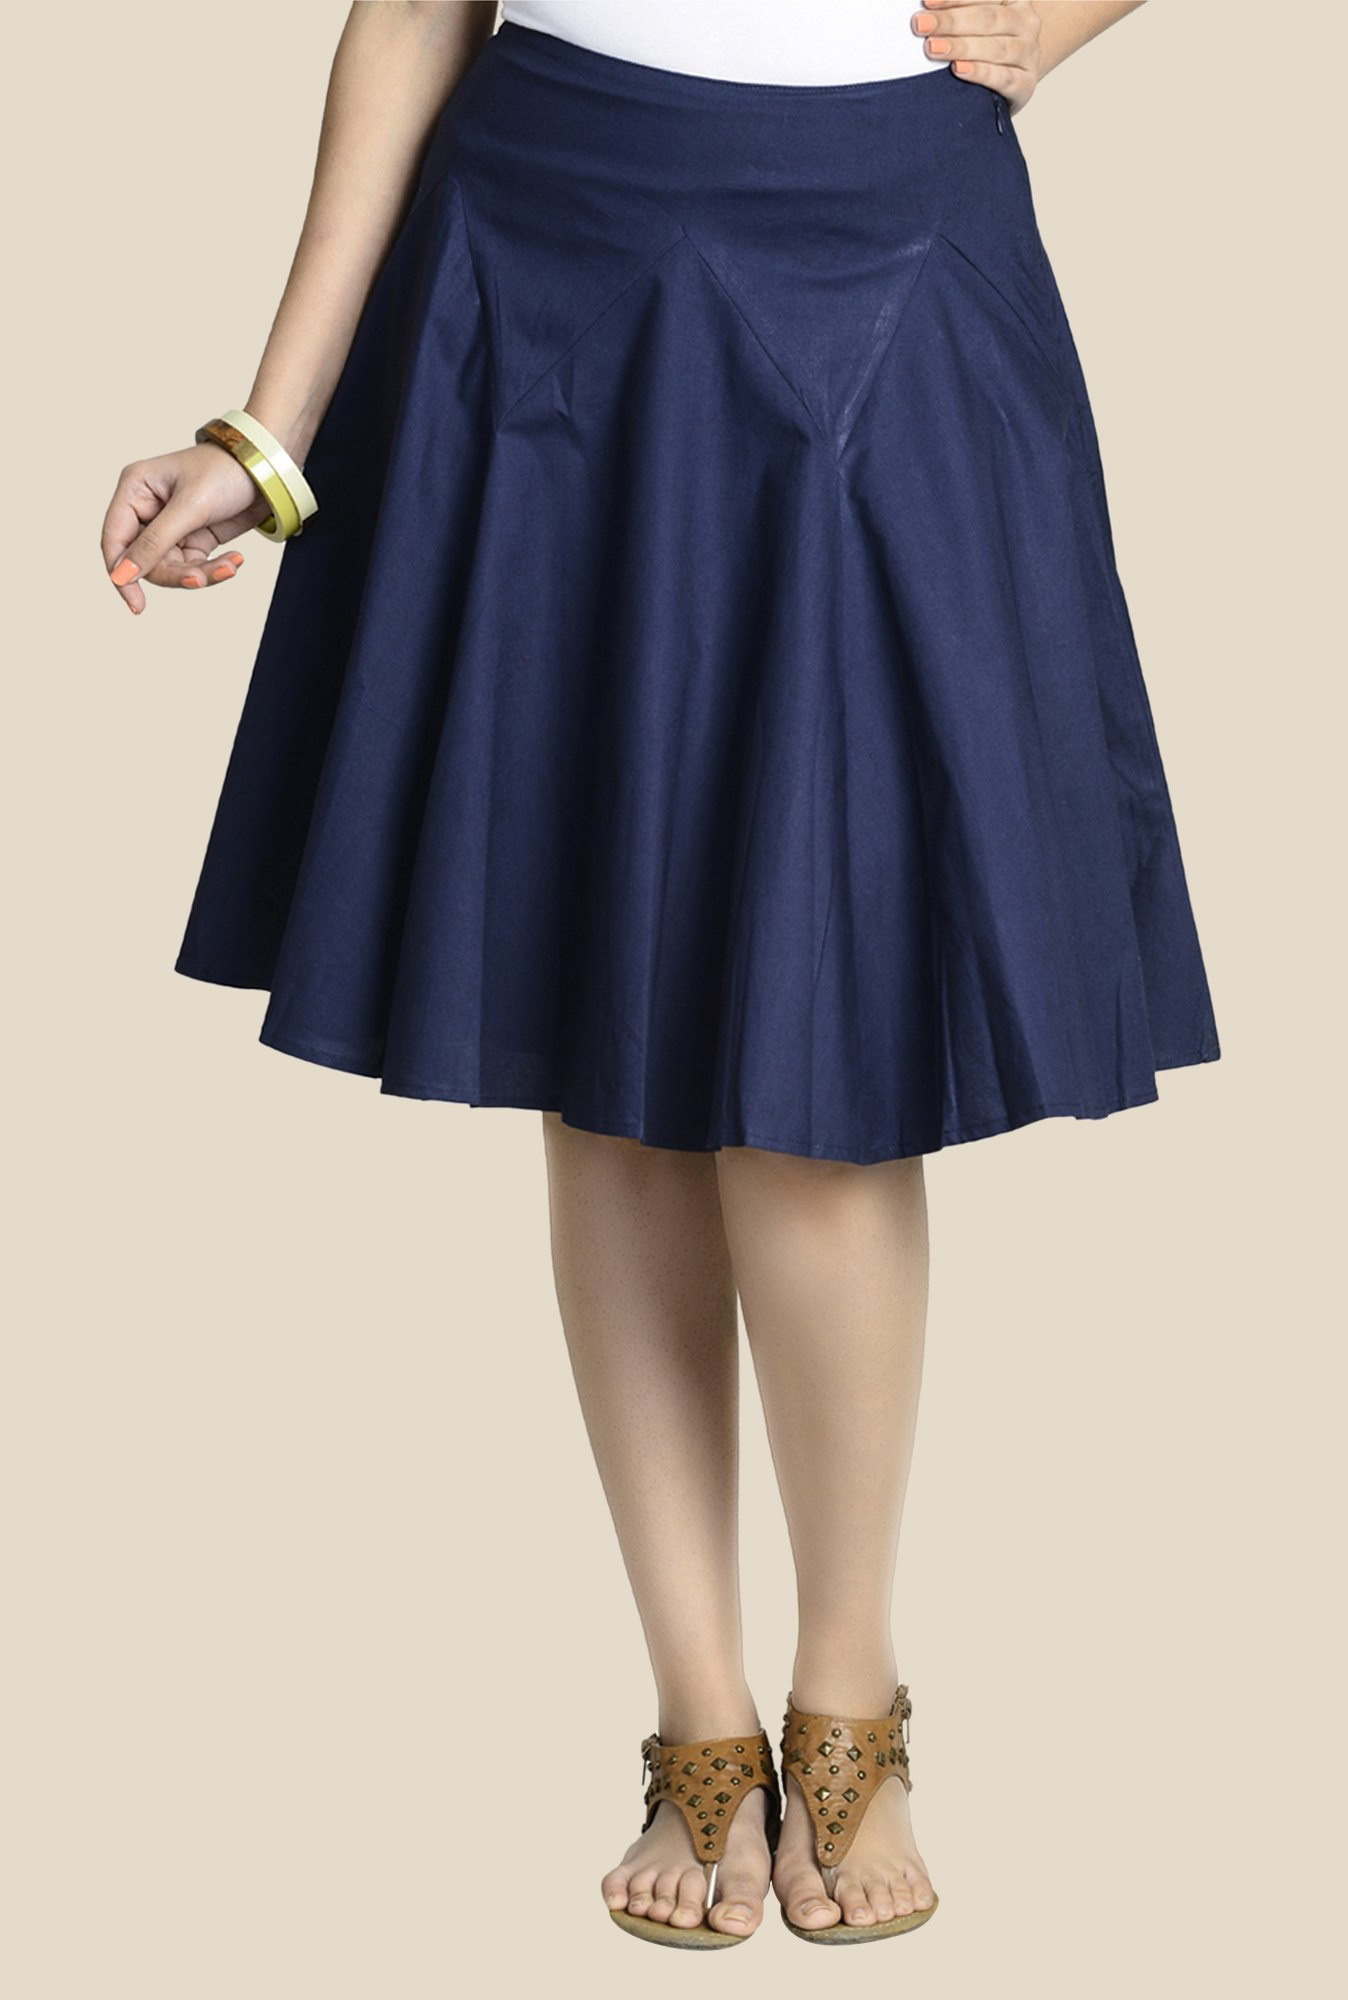 Fabindia Navy Solid Skirt